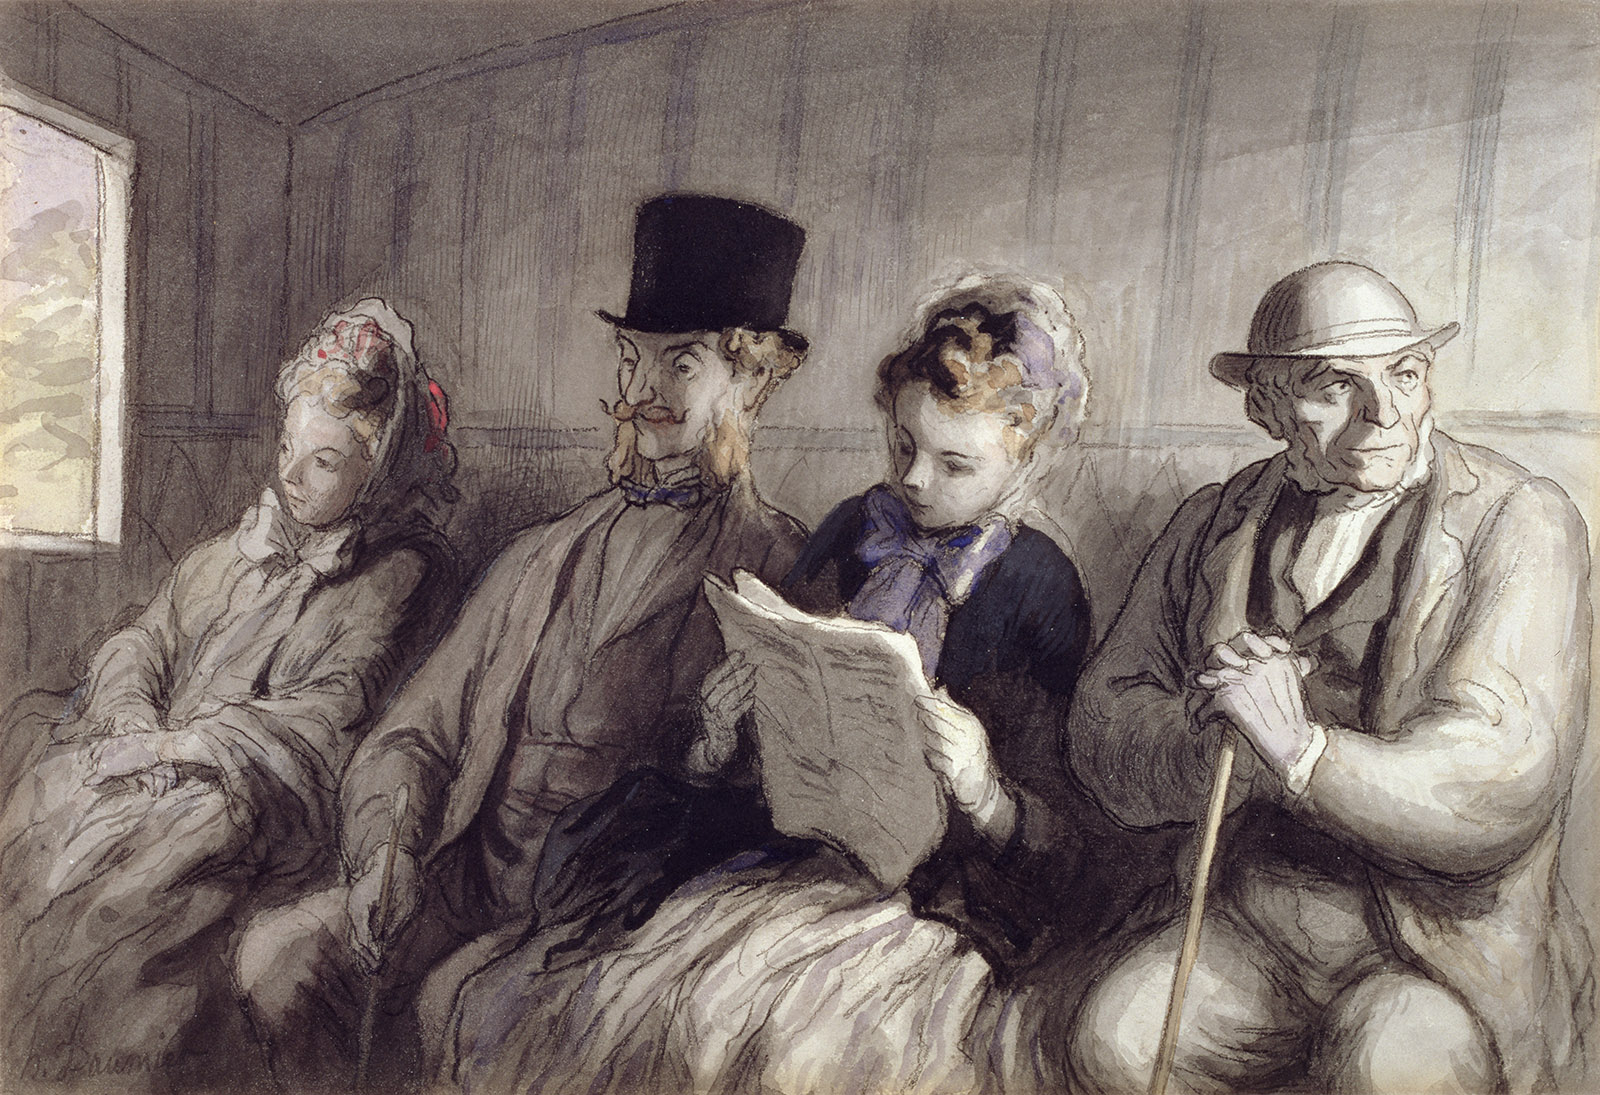 Honoré Daumier: The First Class Carriage, 1864